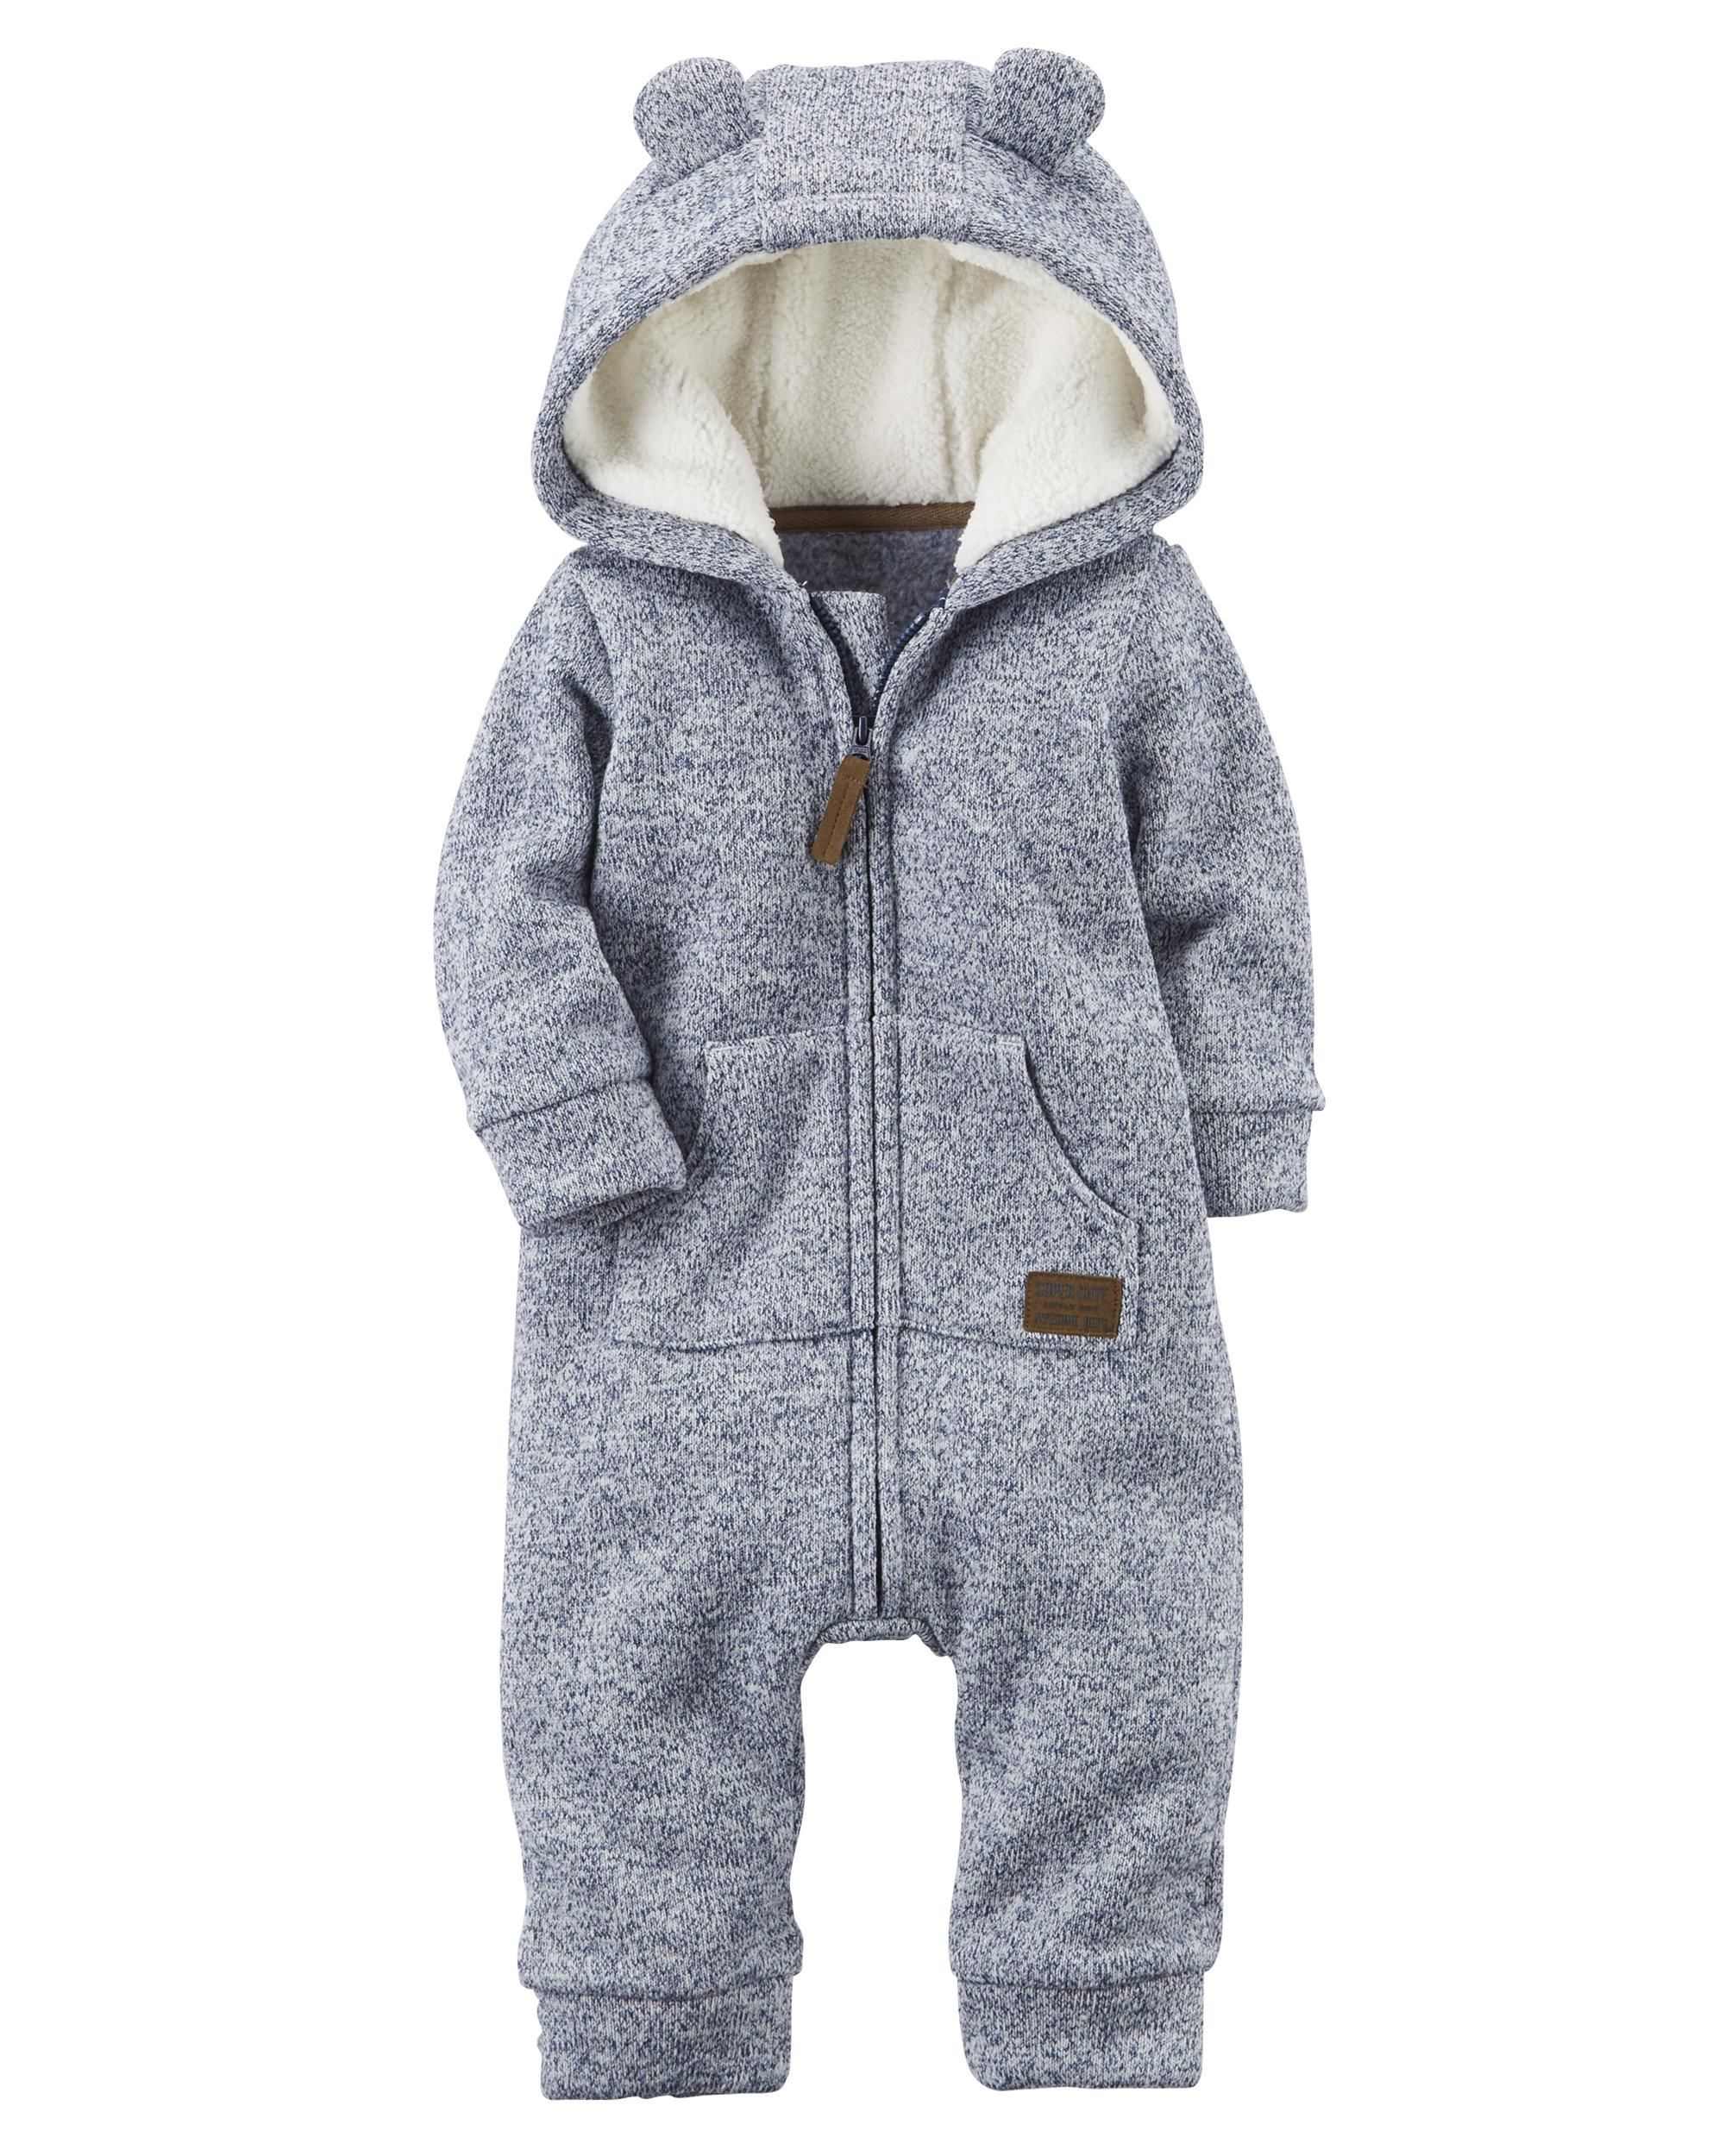 Zipup hooded sherpa jumpsuit chilly weather babies and babies